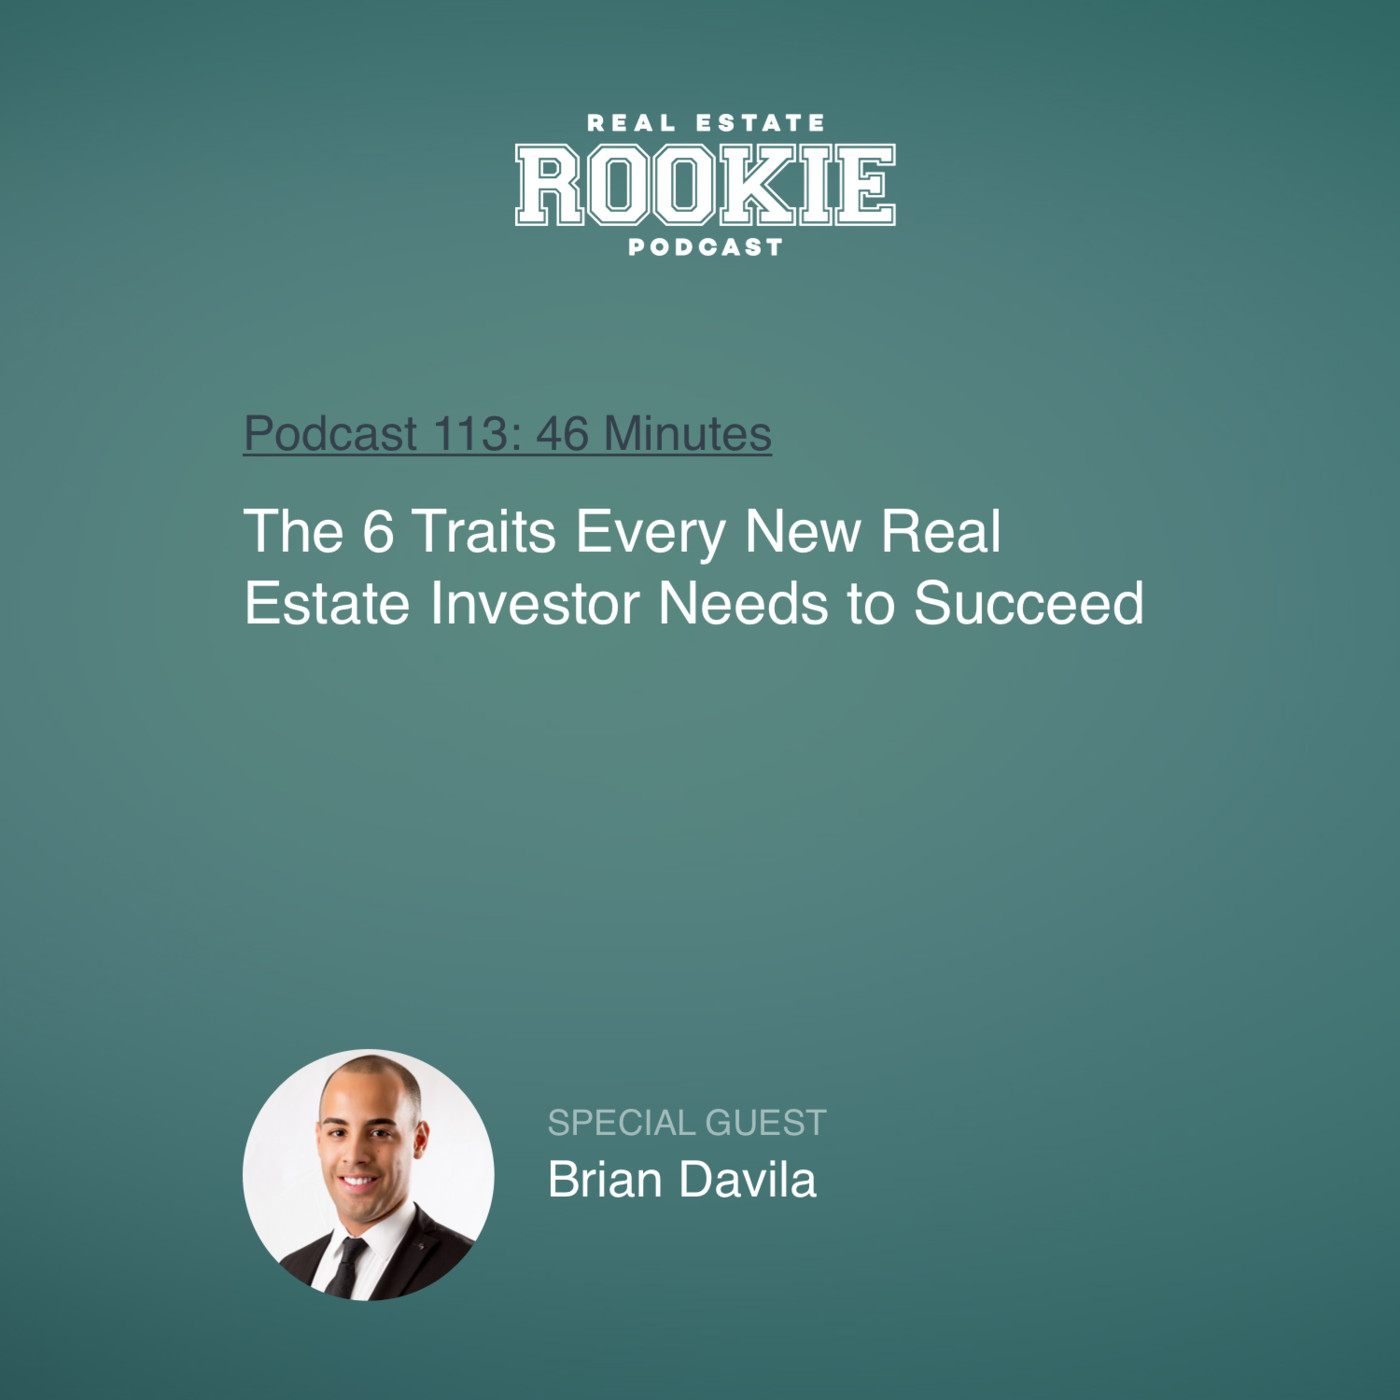 The 6 Traits Every New Real Estate Investor Needs to Succeed